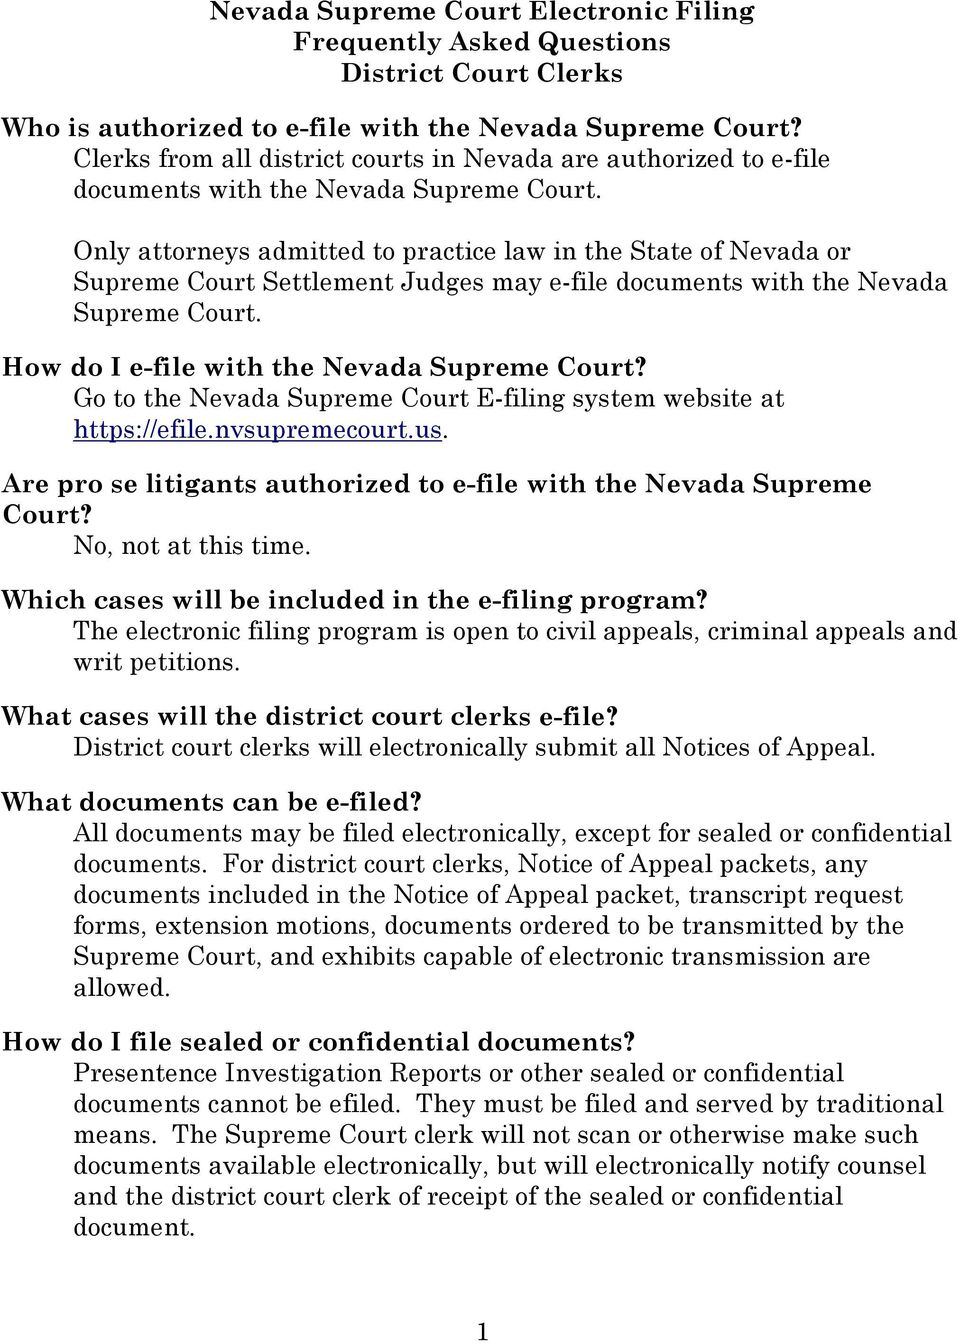 Only attorneys admitted to practice law in the State of Nevada or Supreme Court Settlement Judges may e-file documents with the Nevada Supreme Court. How do I e-file with the Nevada Supreme Court?